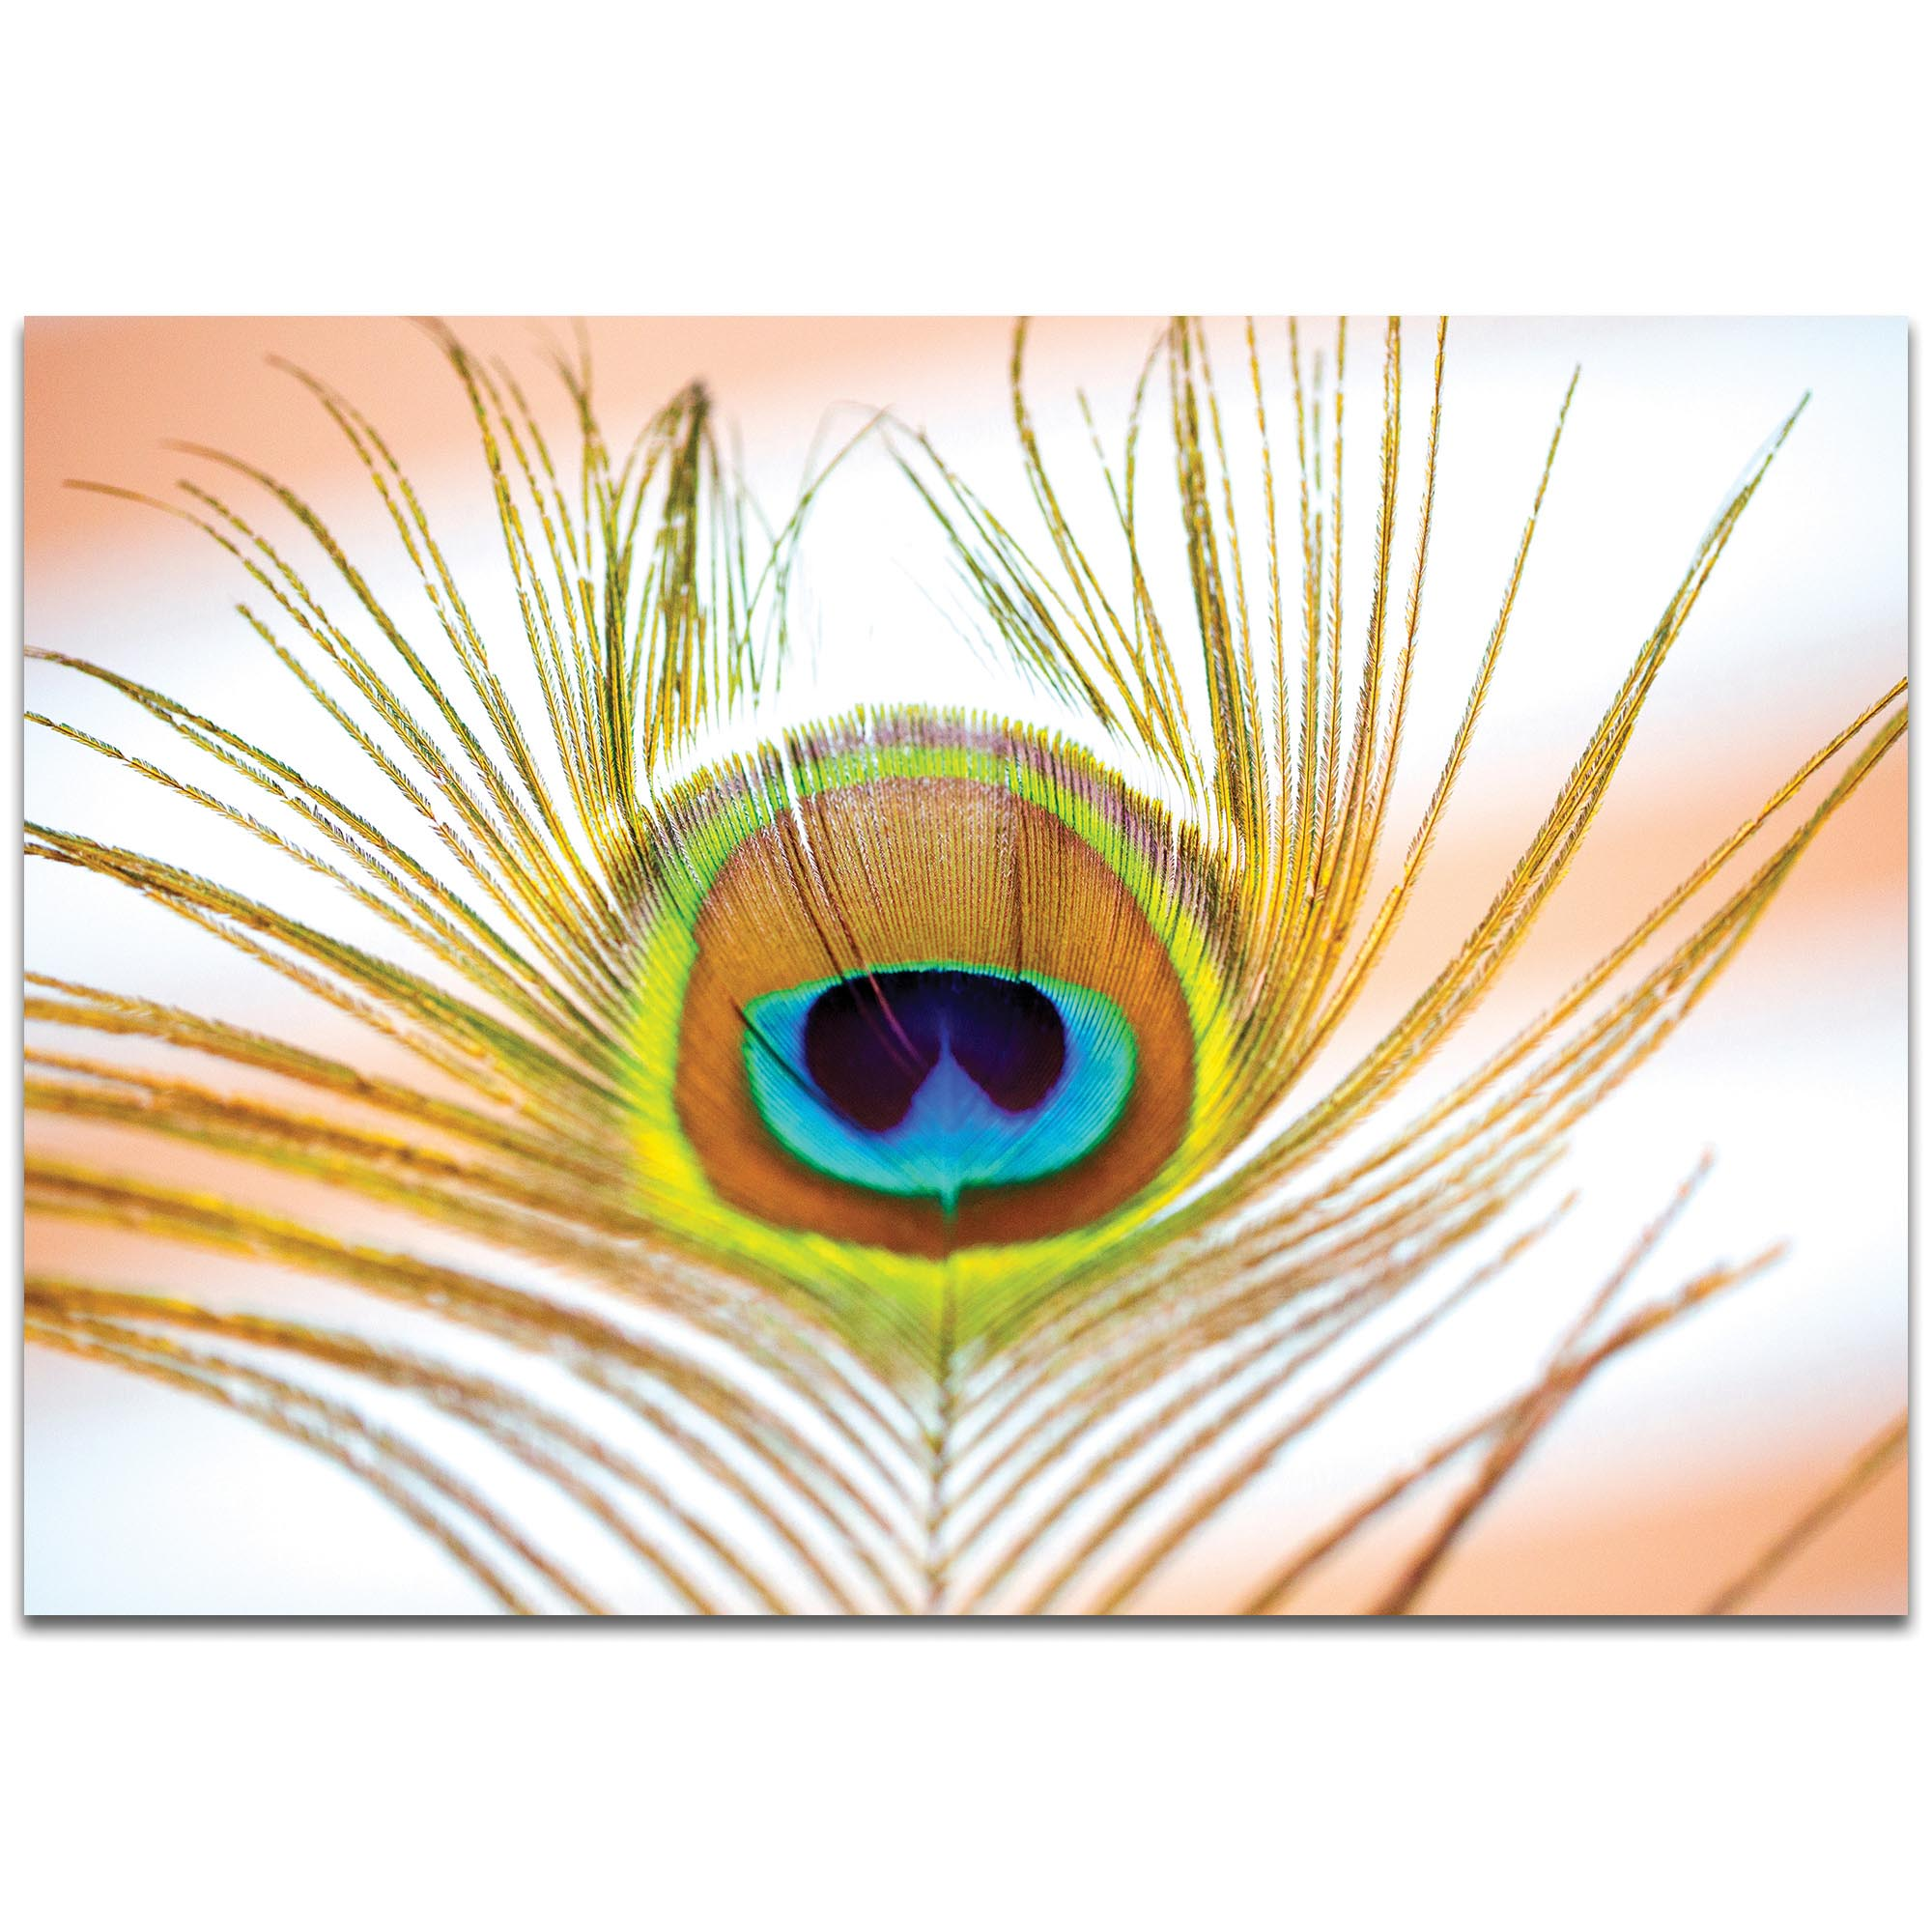 Contemporary Wall Art 'Peacock Sprout' - Wildlife Decor on Metal or Plexiglass